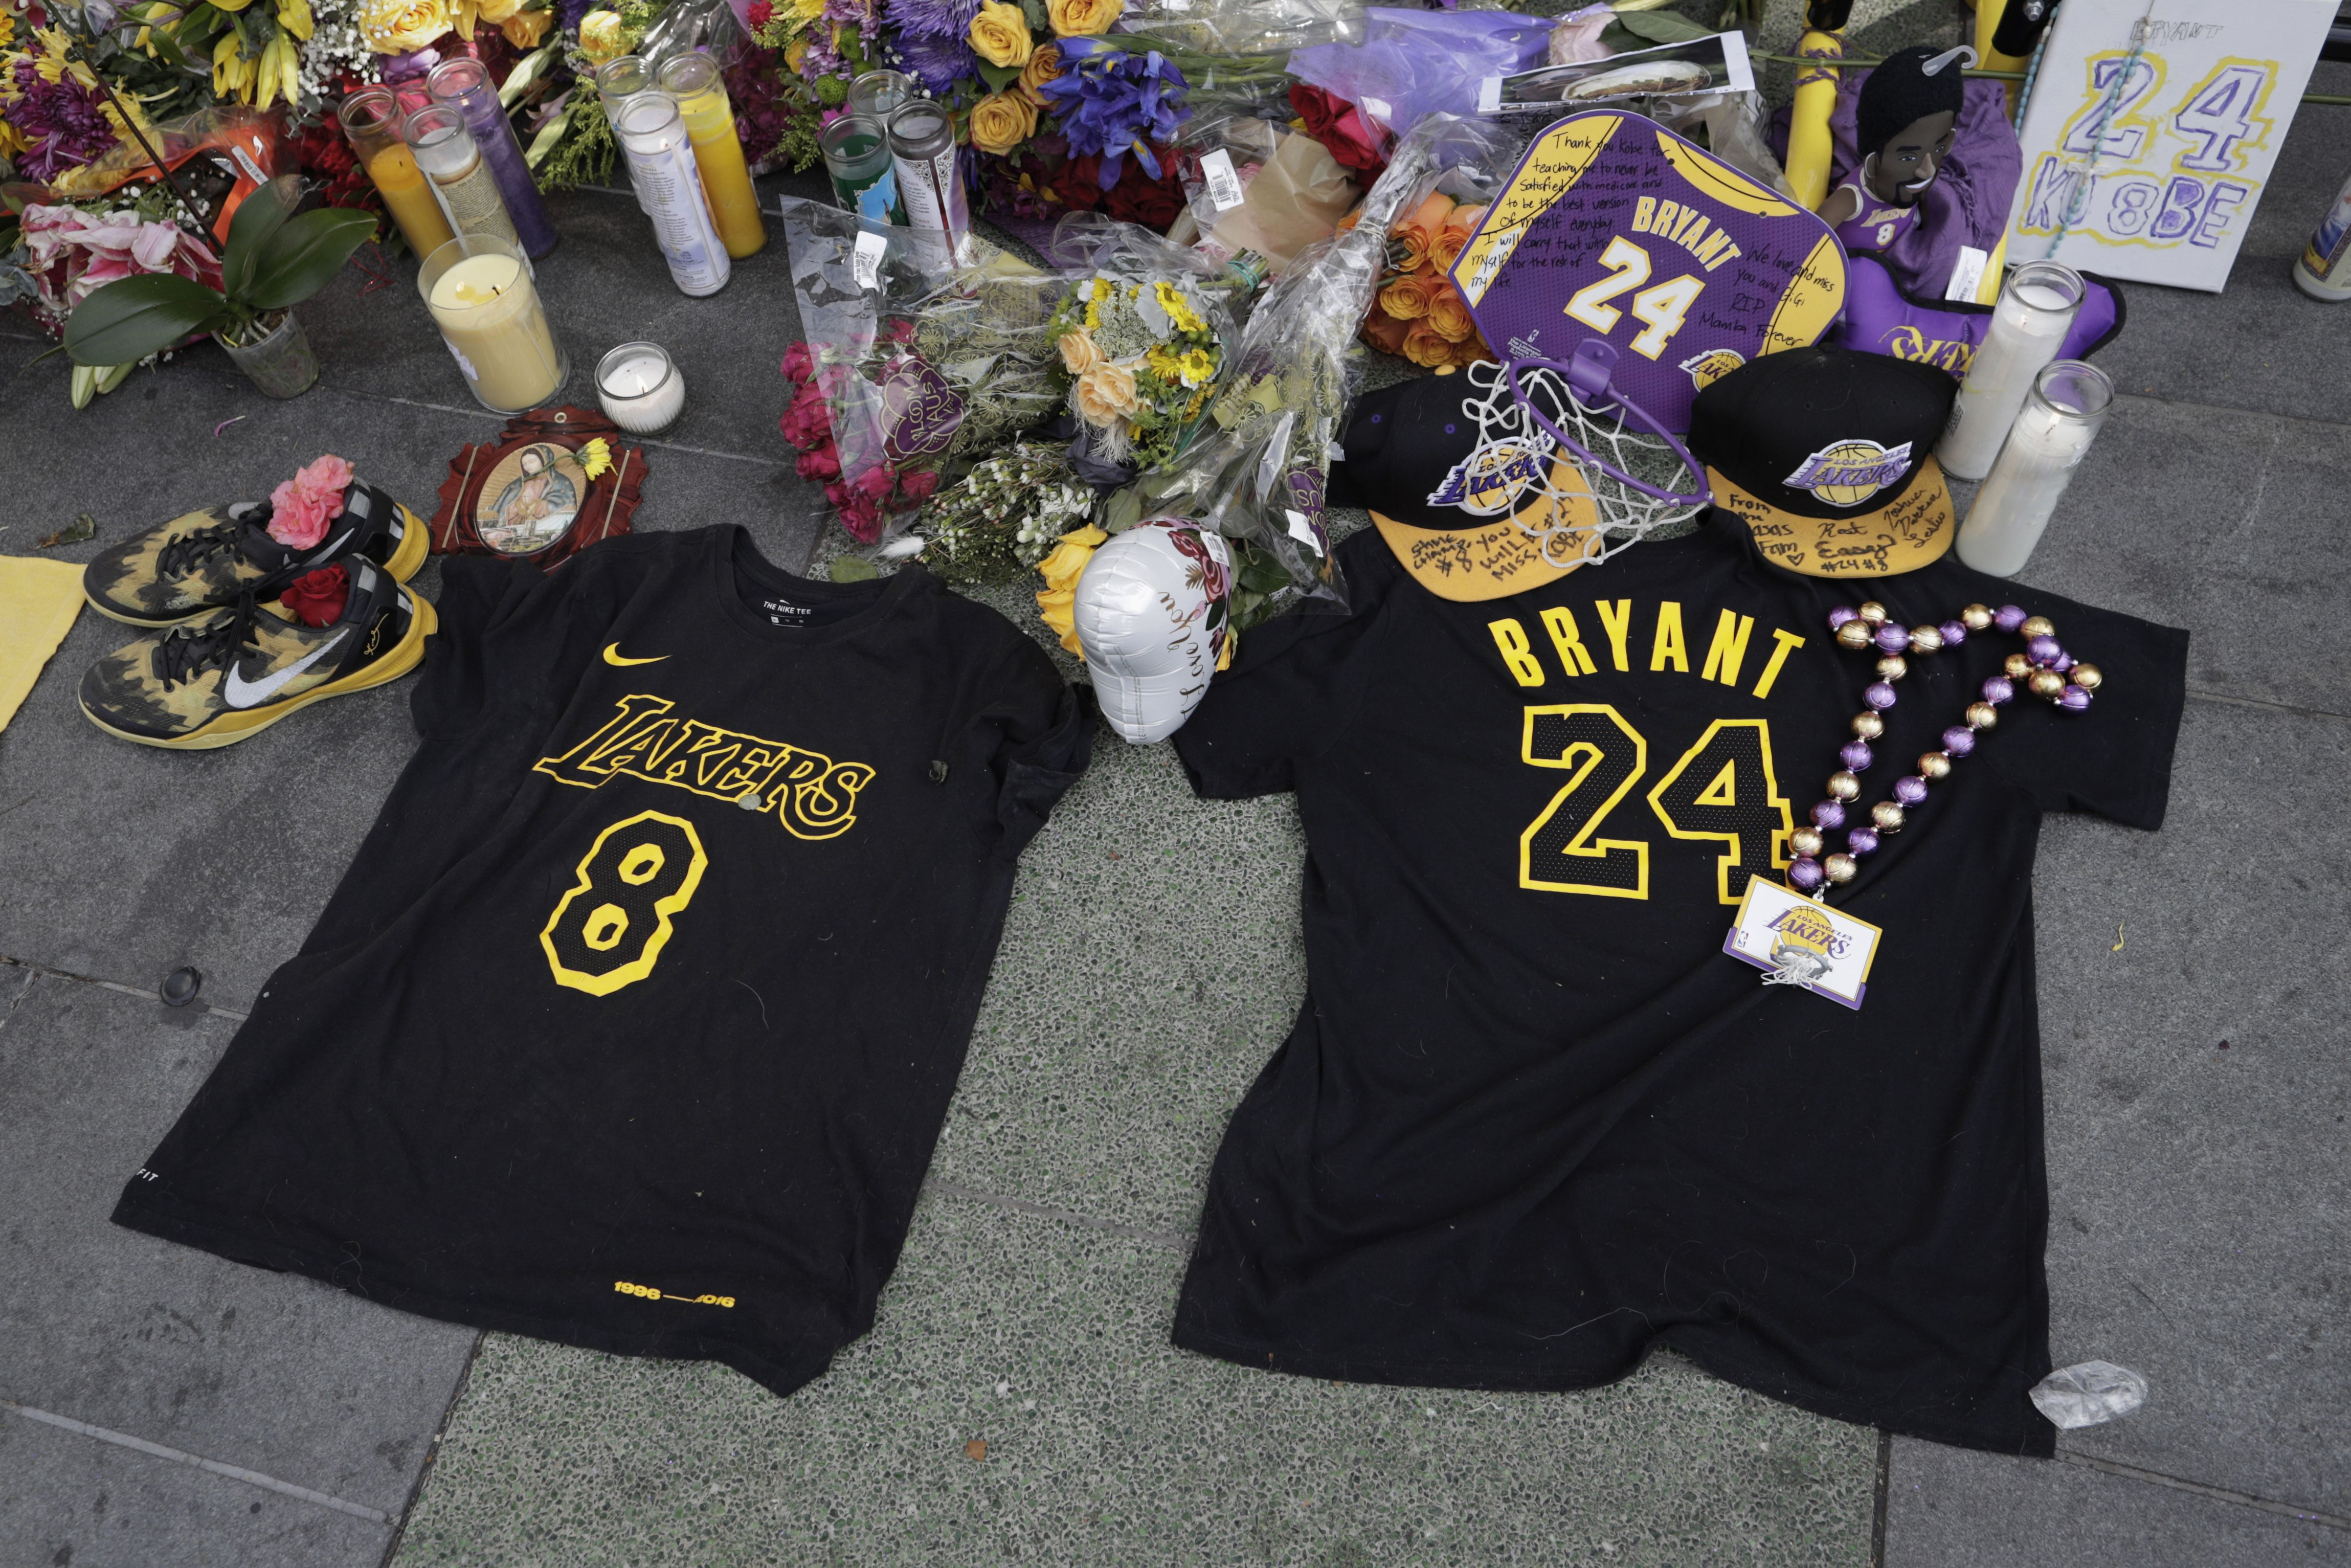 Why Did Kobe Bryant Have 2 Numbers? Lakers Retired 8 and 24 Jerseys